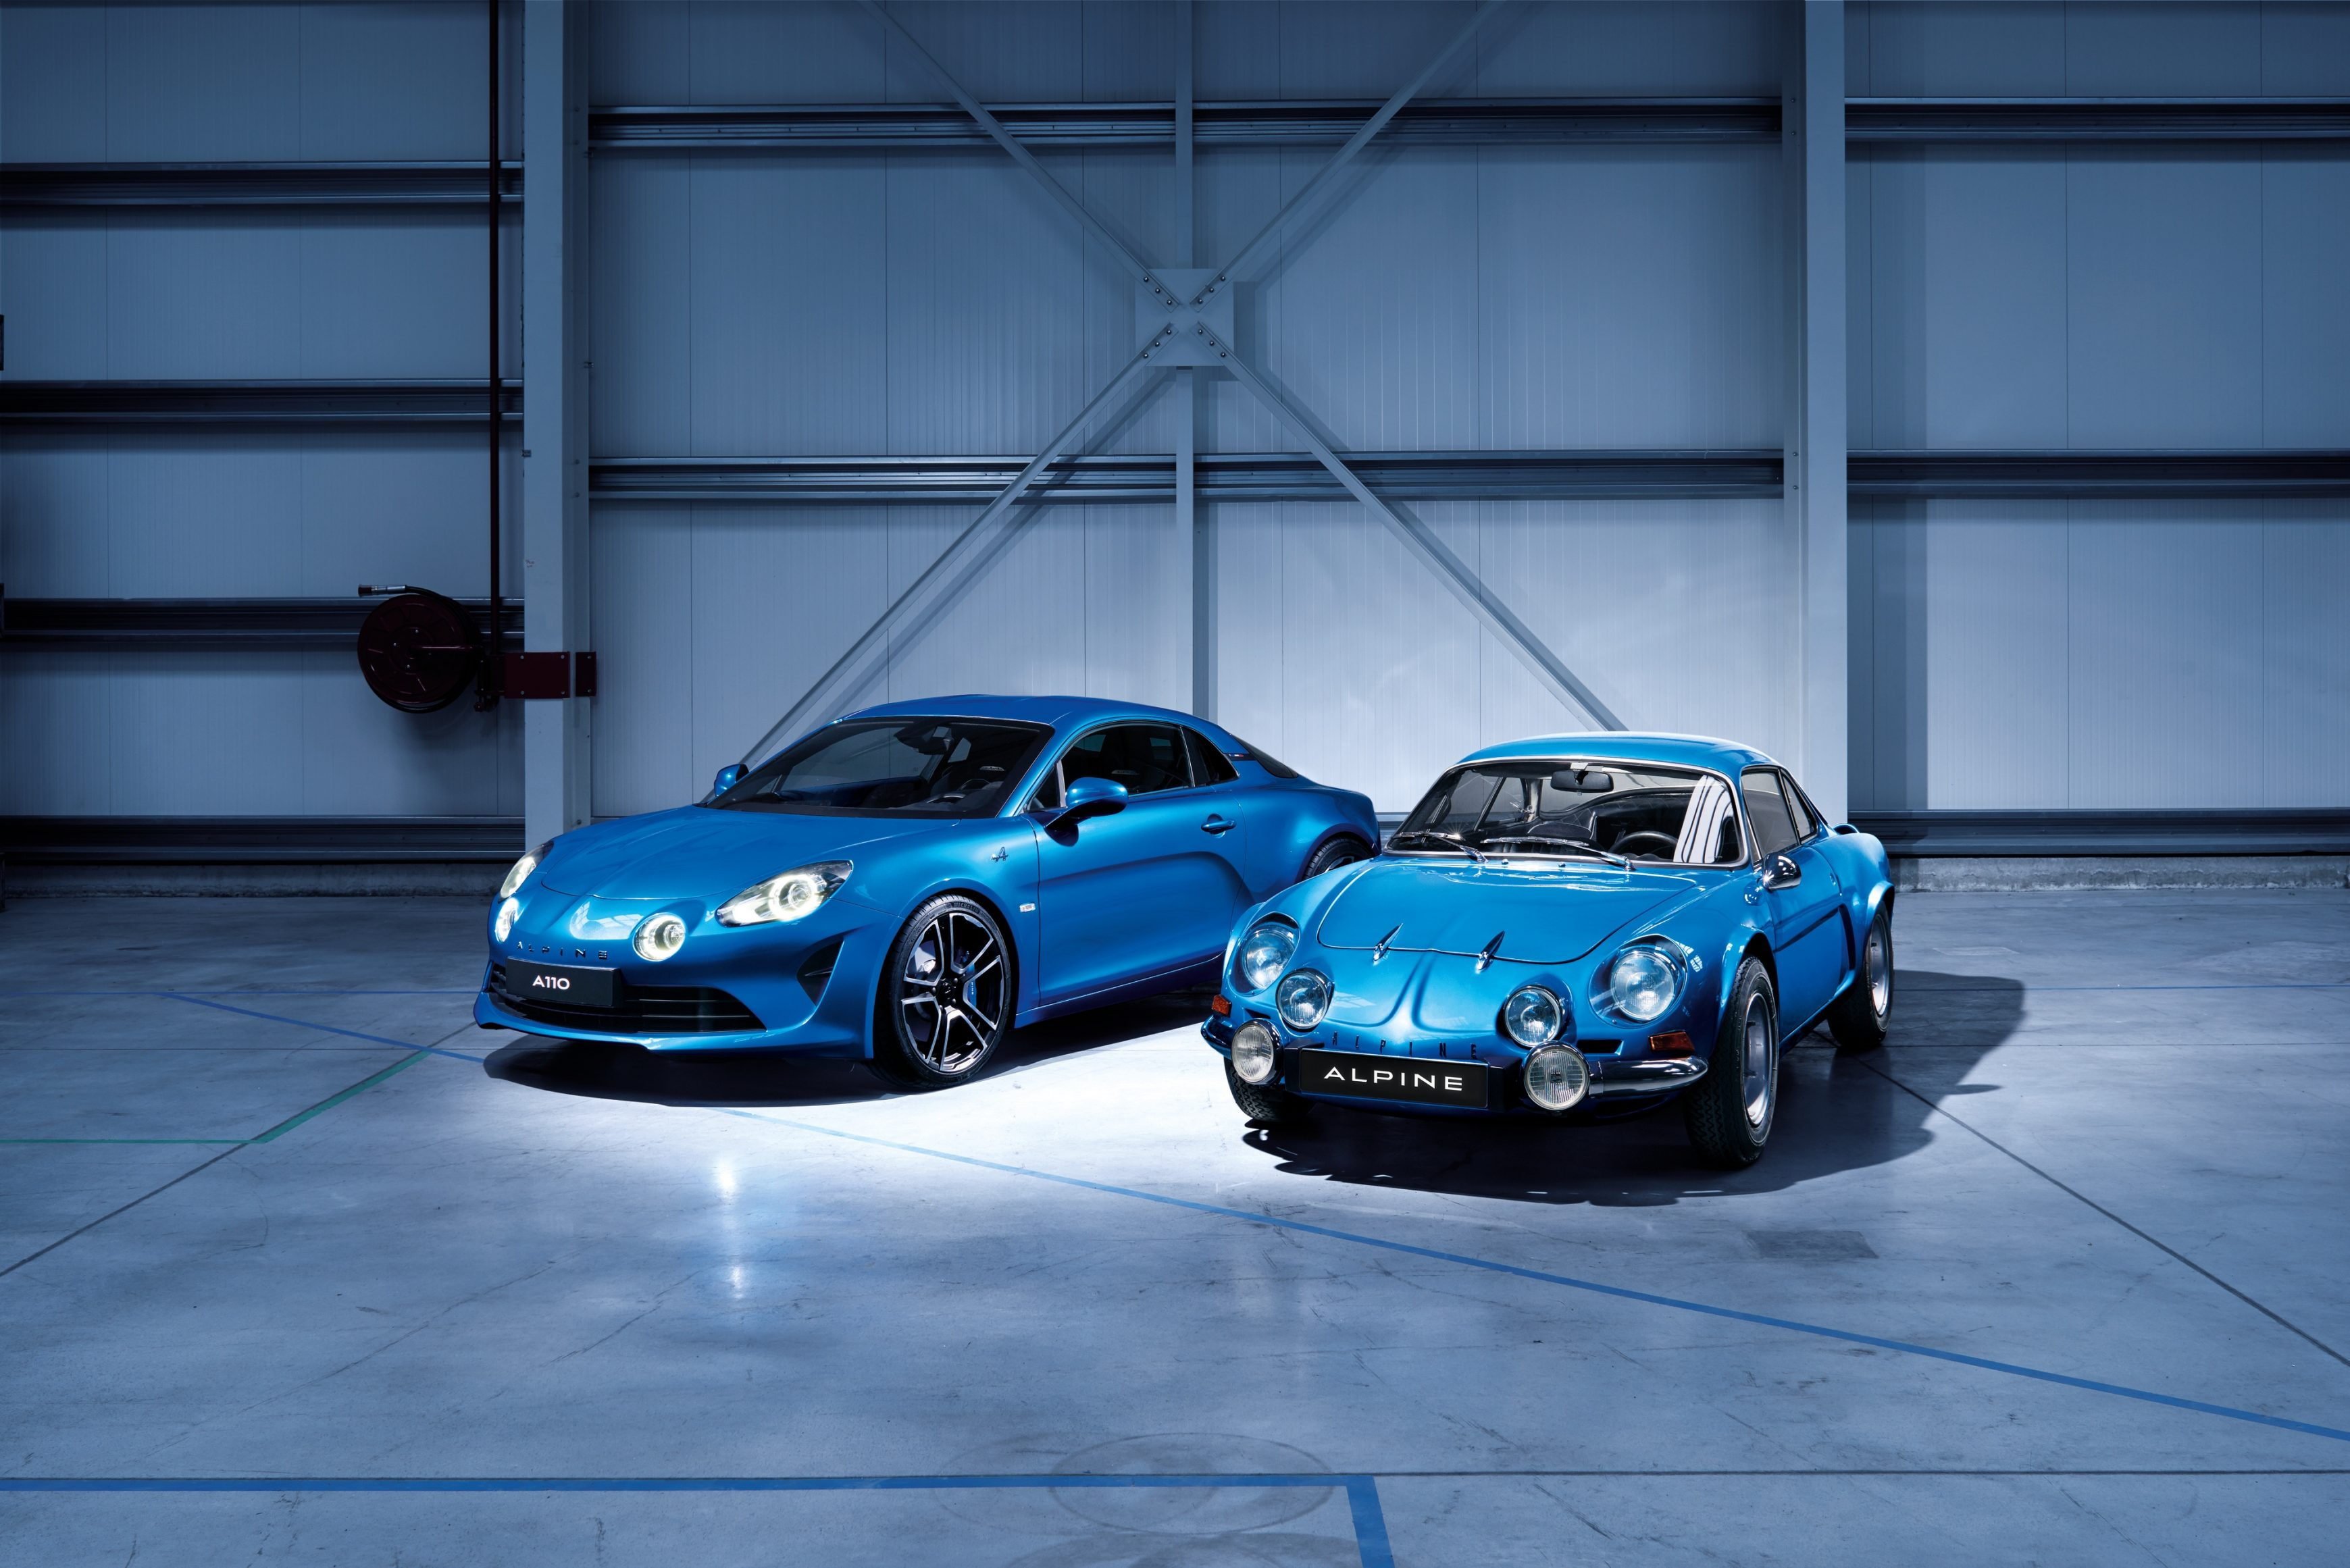 2018 Alpine A110 alongside its 1961 ancestor